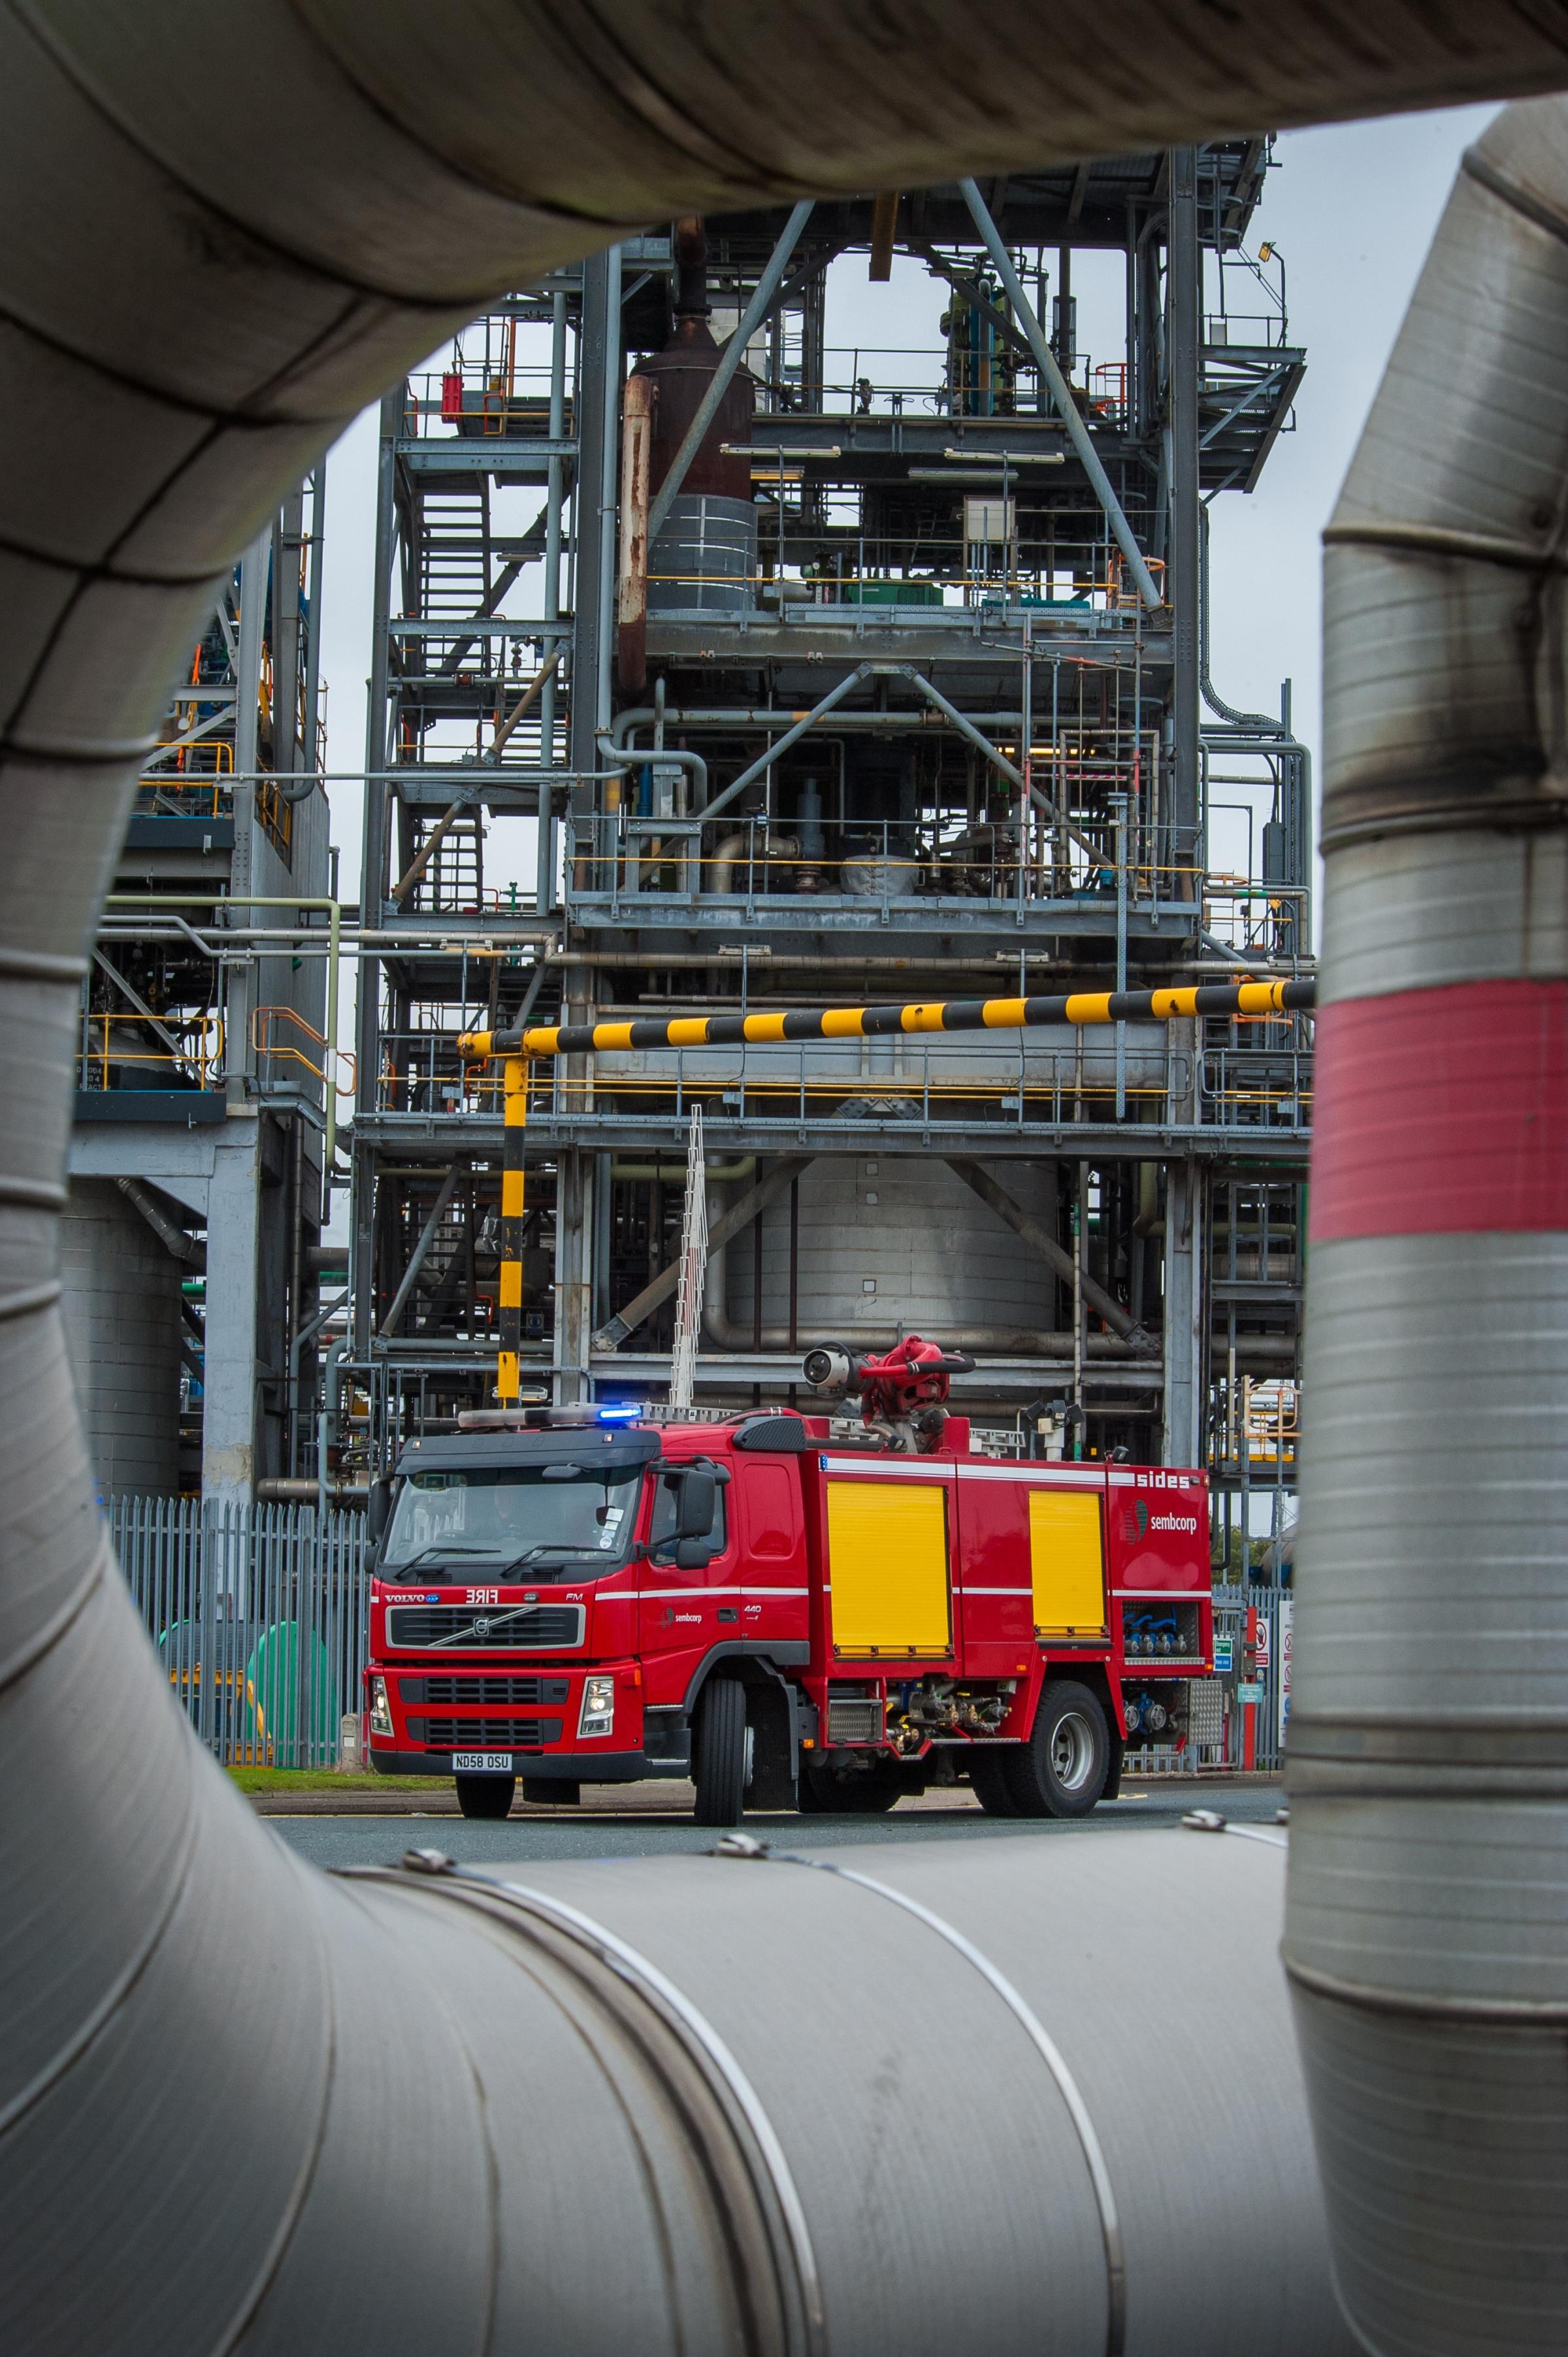 EMERGENCY DEAL: The Falck Group has bought Sembcorp Utilities UK's asset protection and emergency response business